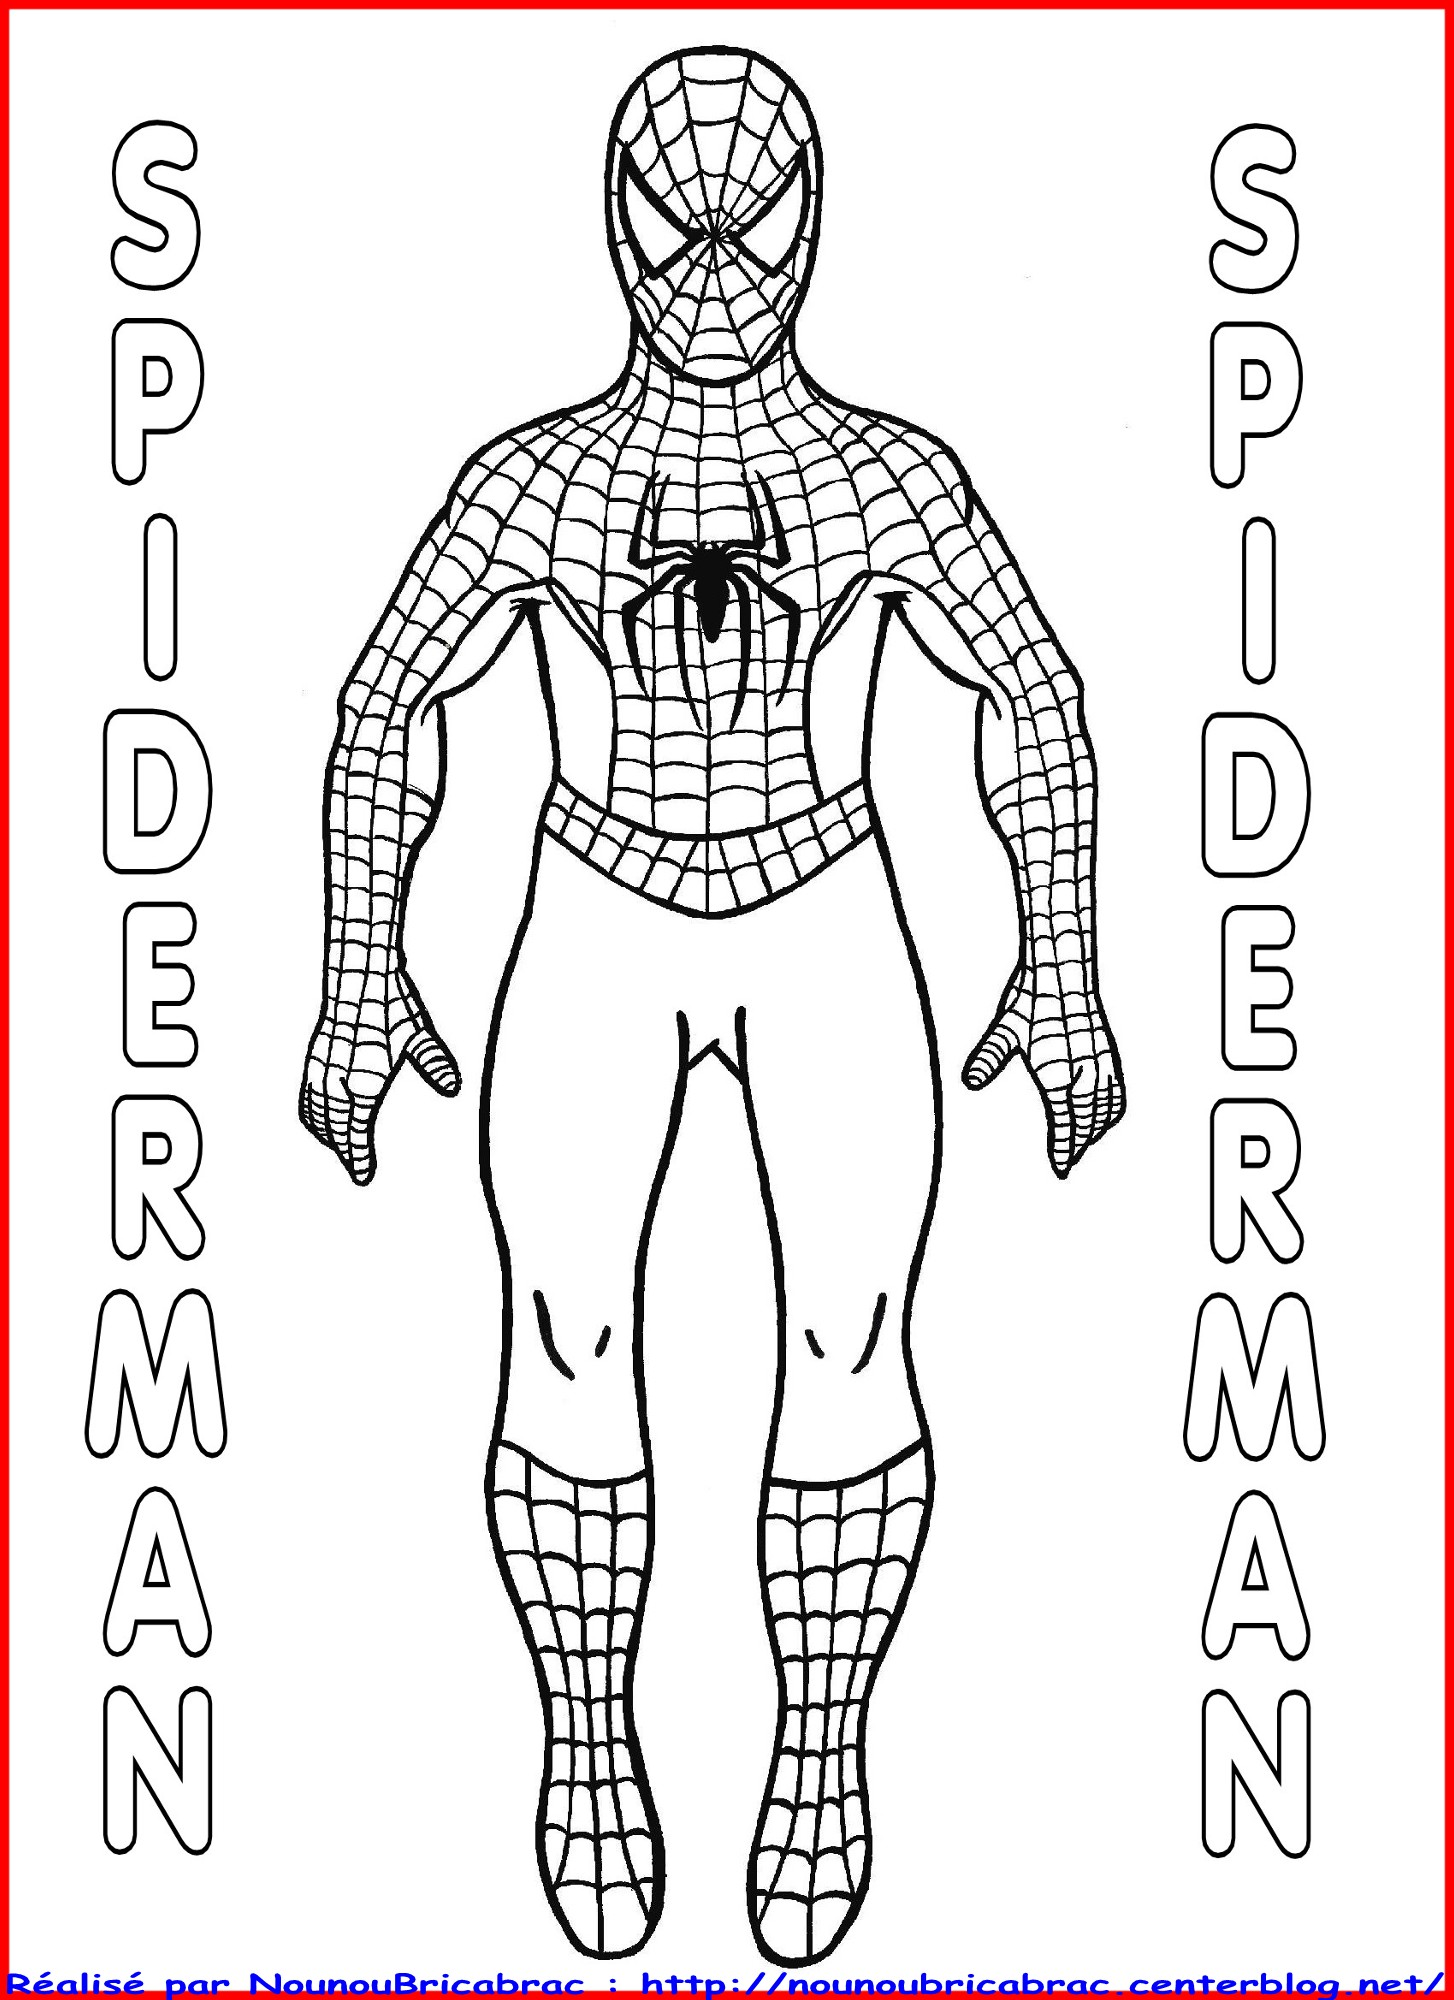 167 dessins de coloriage spiderman imprimer sur page 7 - Coloriage spiderman imprimer ...